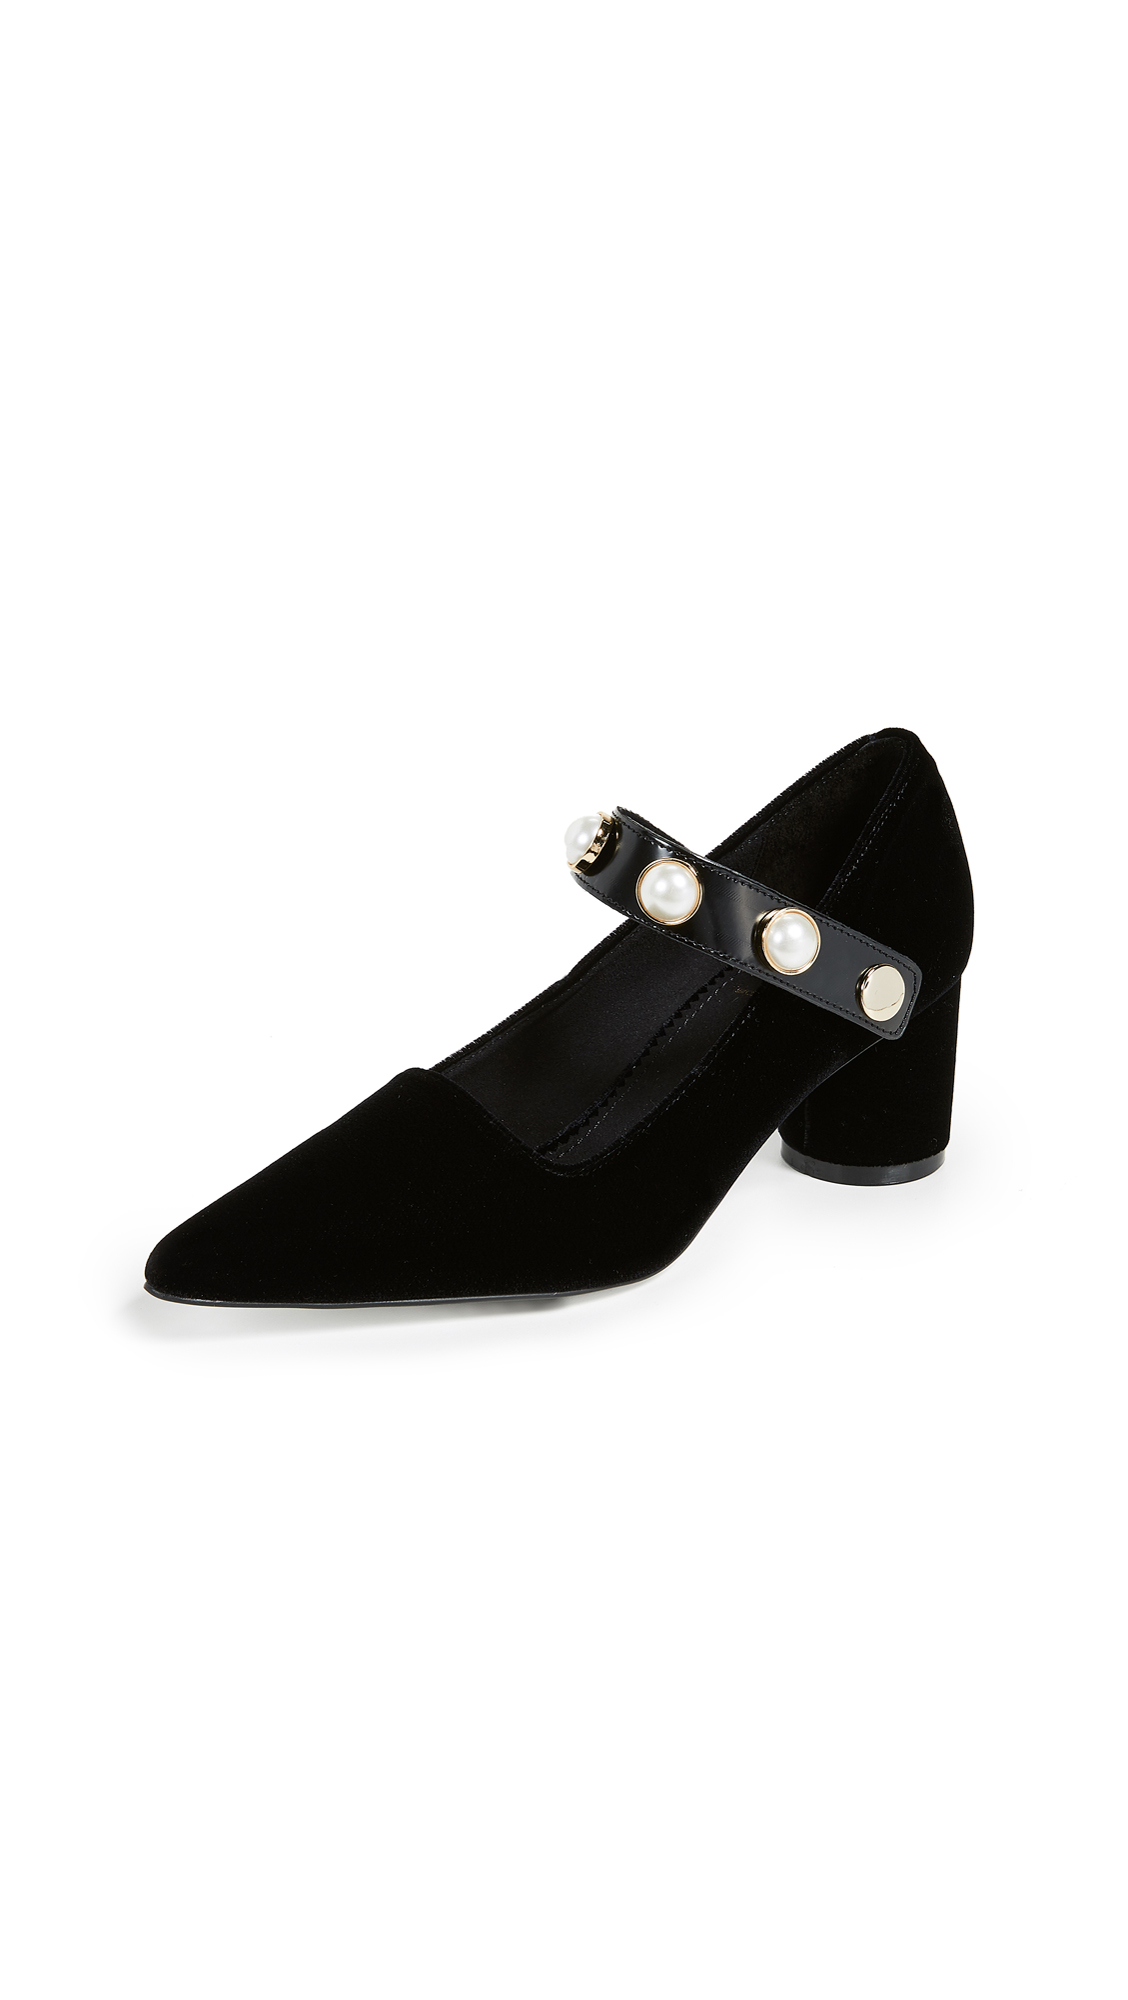 Suecomma Bonnie Jewel Strap Detailed Pumps - Black